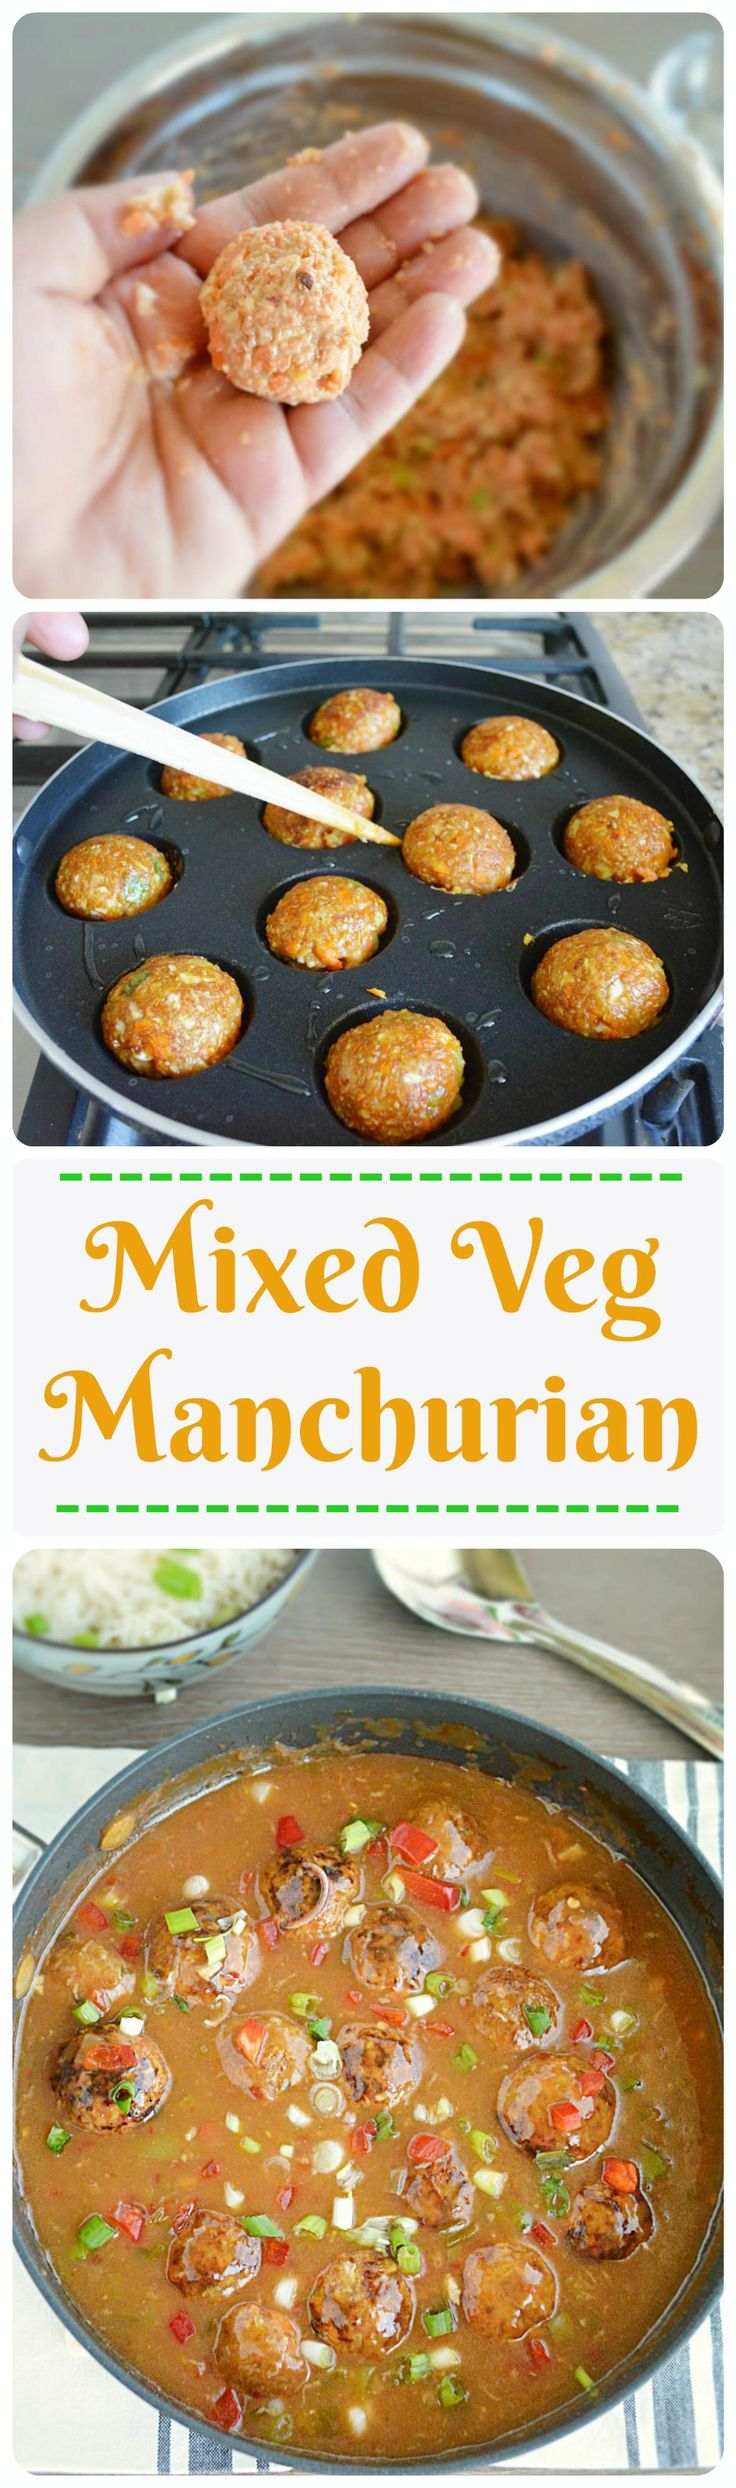 52 best veg recipes images on pinterest vegetarian recipes enjoy the healthy version of non fried mixed veg manchurian dumplings tossed in soy based gravy is a popular indo chinese recipe forumfinder Image collections